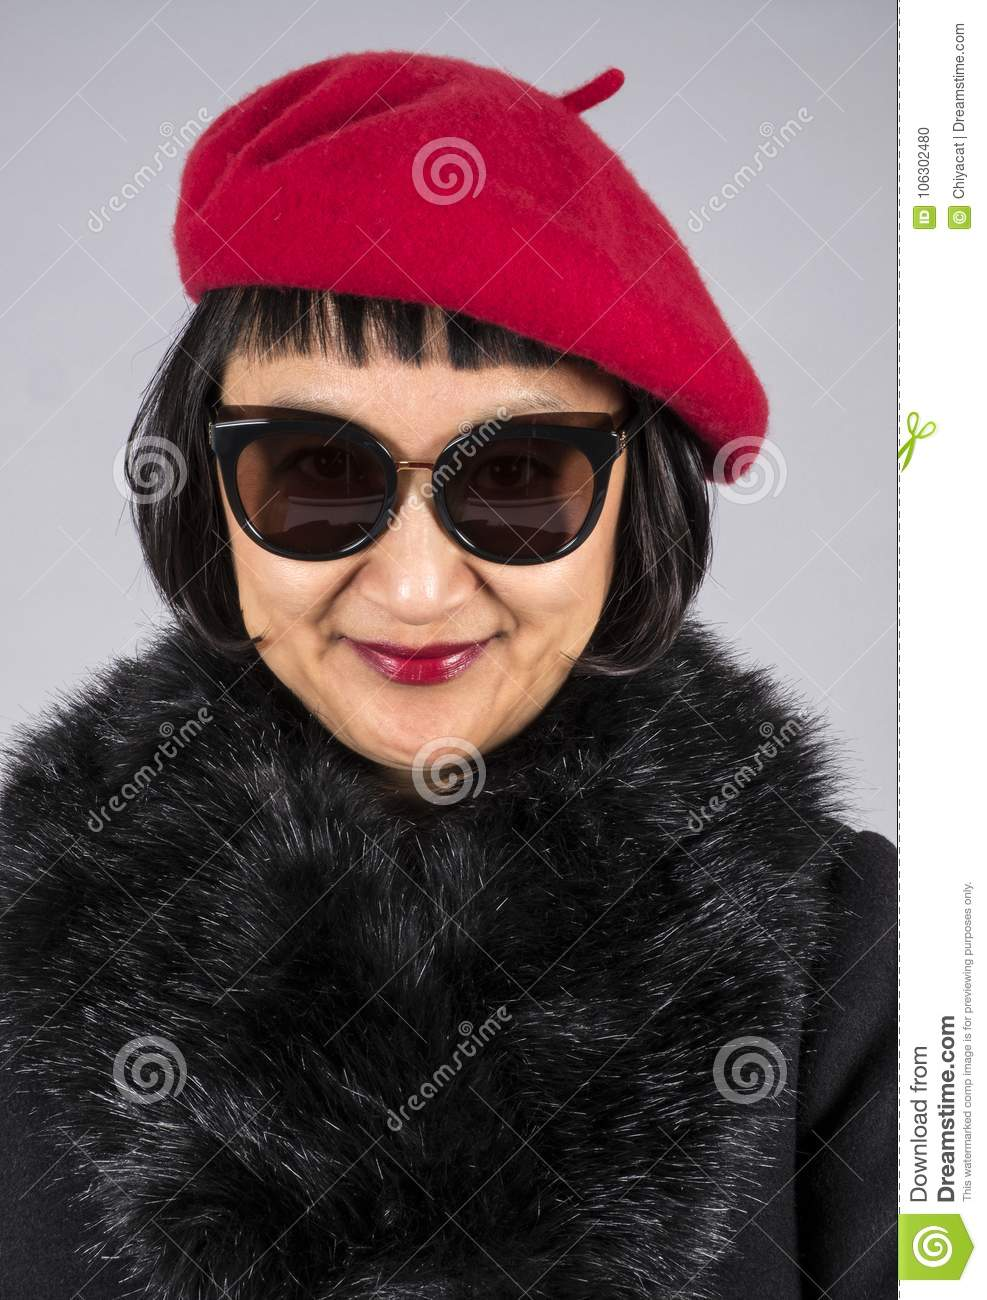 3bade15f08cfb Headshot Of An Asian Woman With Short Hair Wearing A Red Beret Stock ...